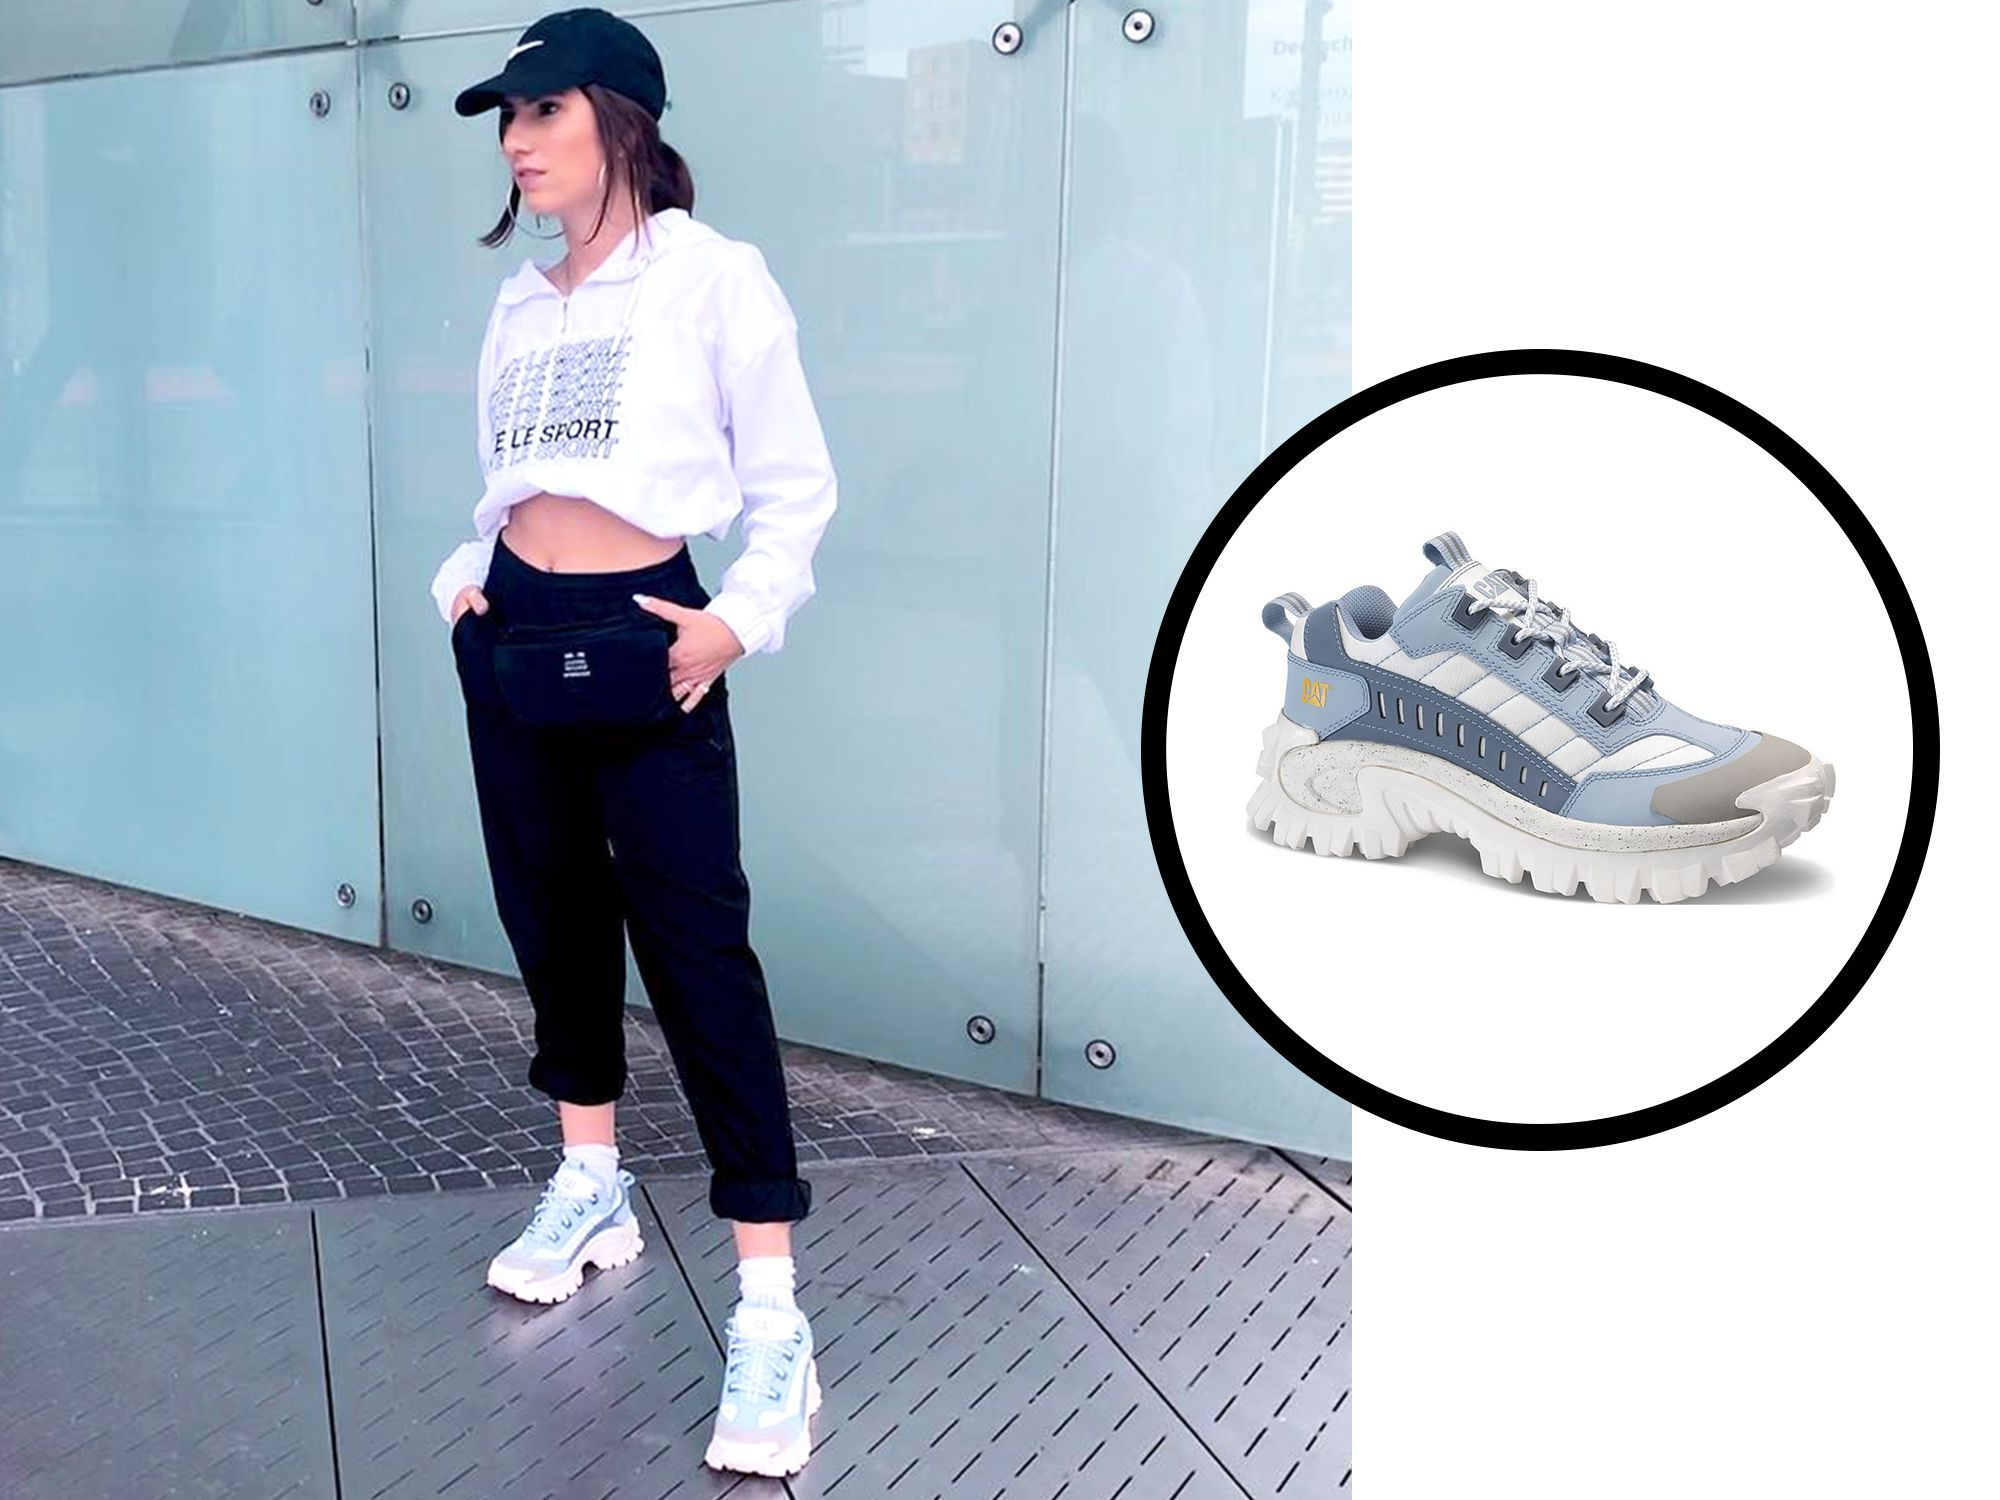 16 Best Shoe game images in 2019 | Shoes, Sneakers, Cute shoes